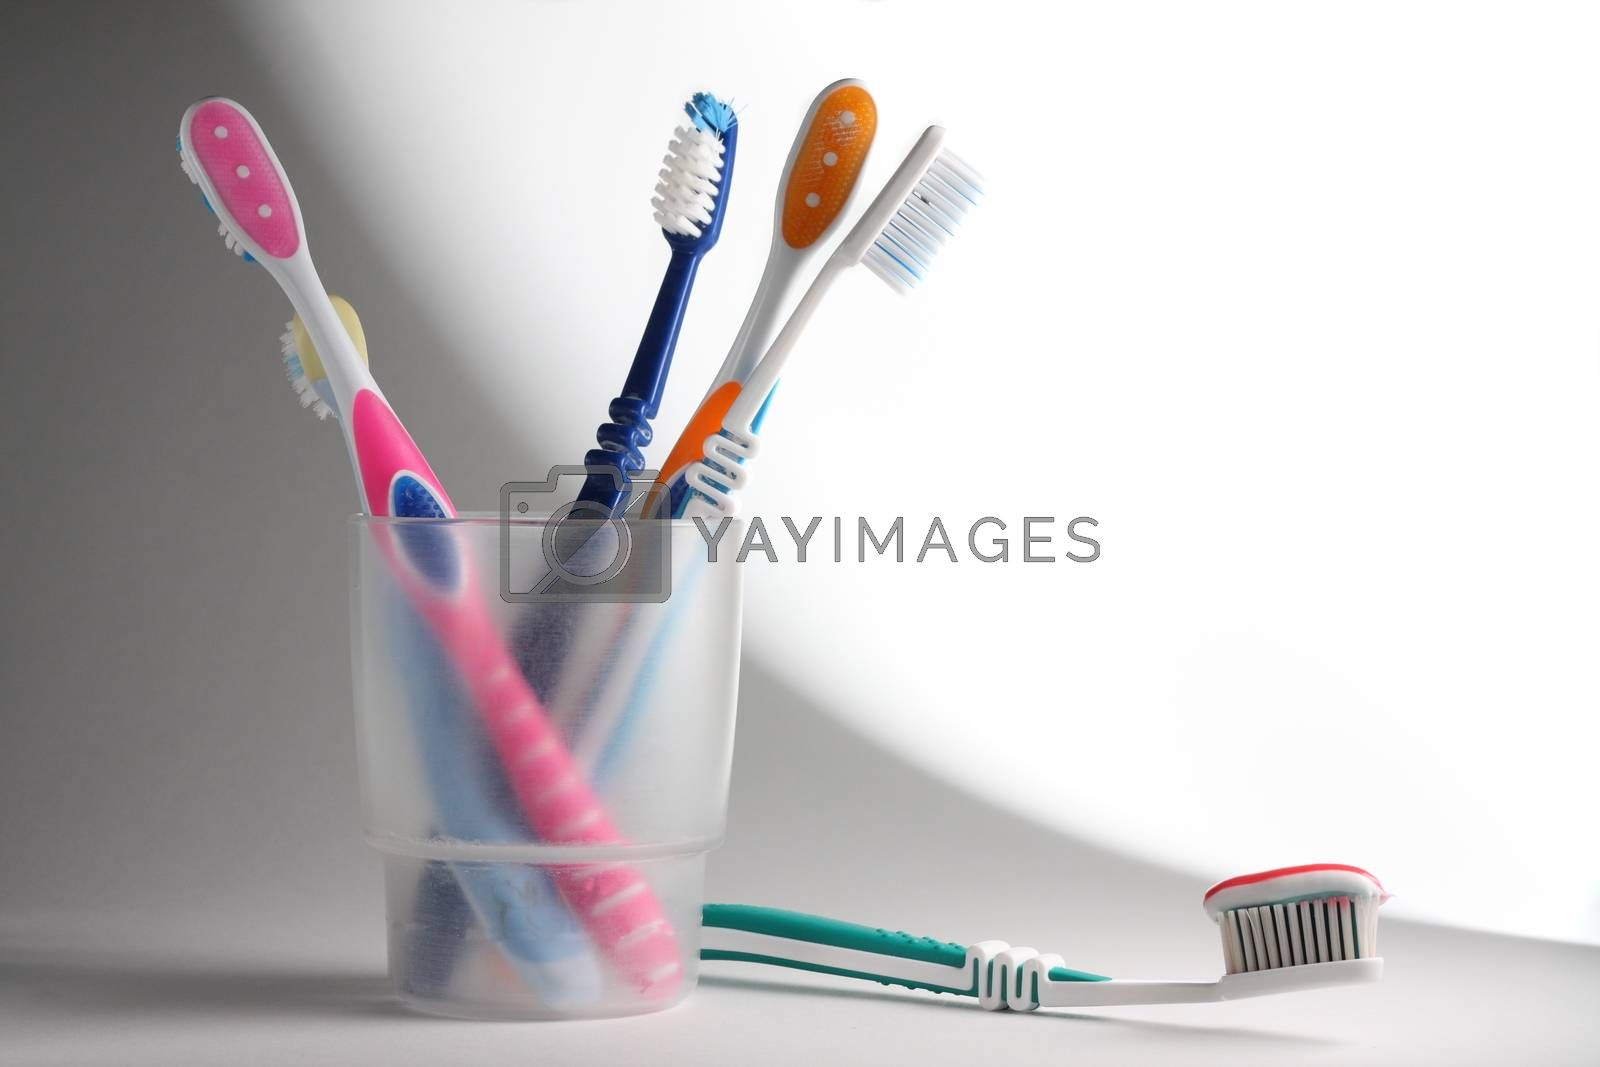 Some toothbrushes in a plastic glass